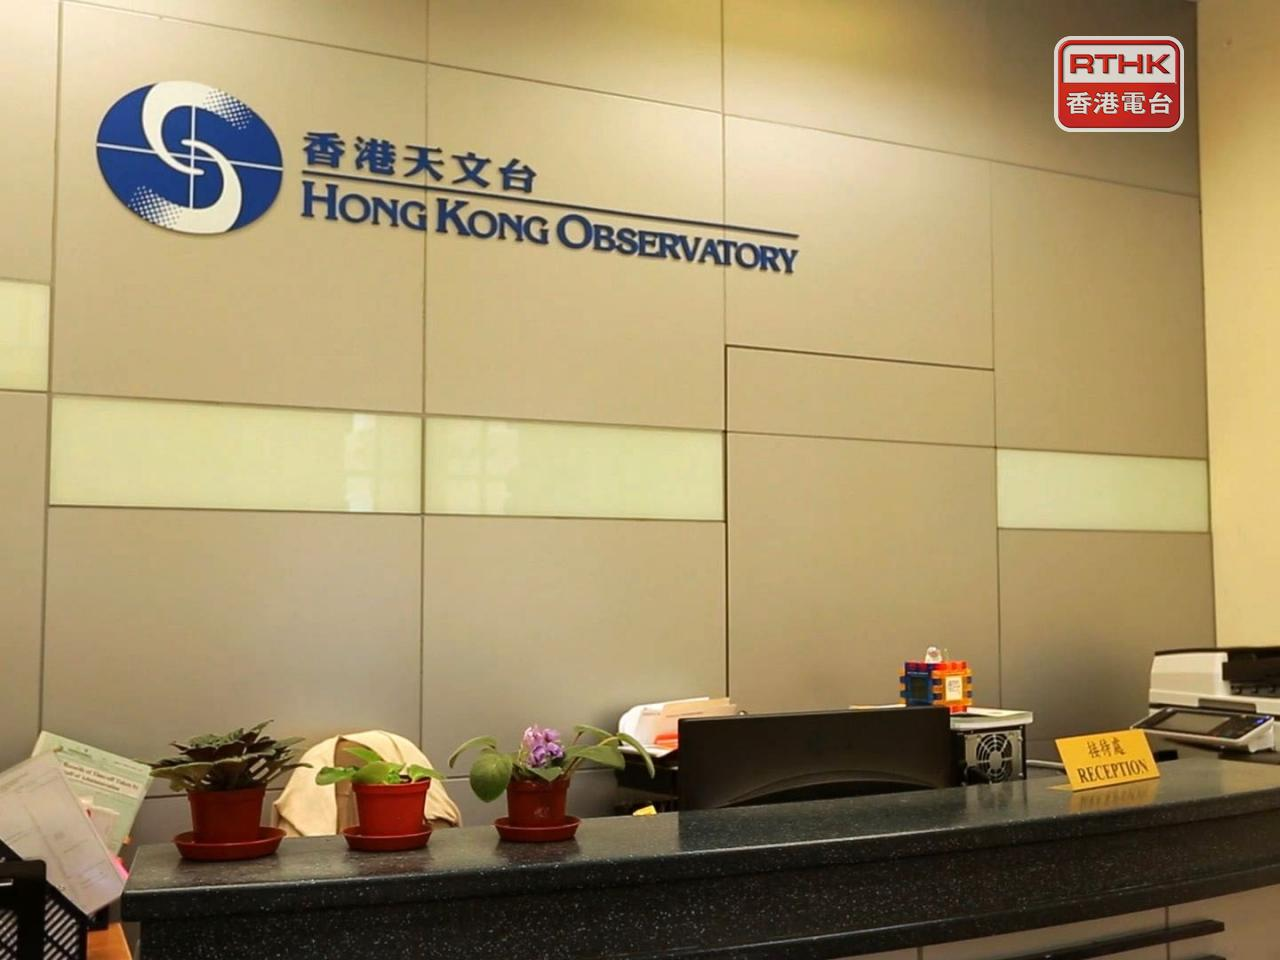 The Observatory said heavy rain had affected the northern part of the New Territories. Photo: RTHK